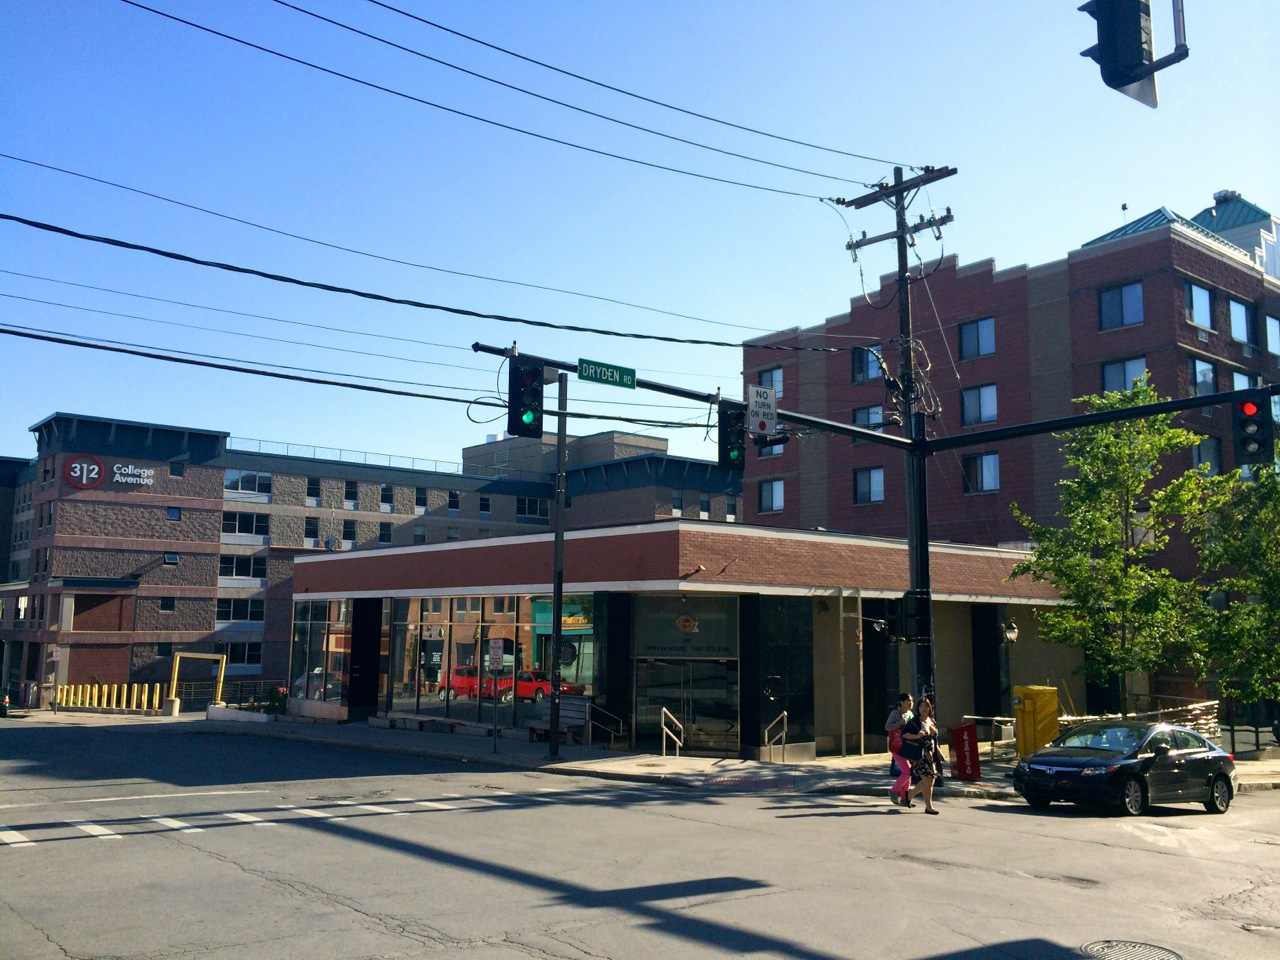 330-College-Ave-Ithaca-062414-21